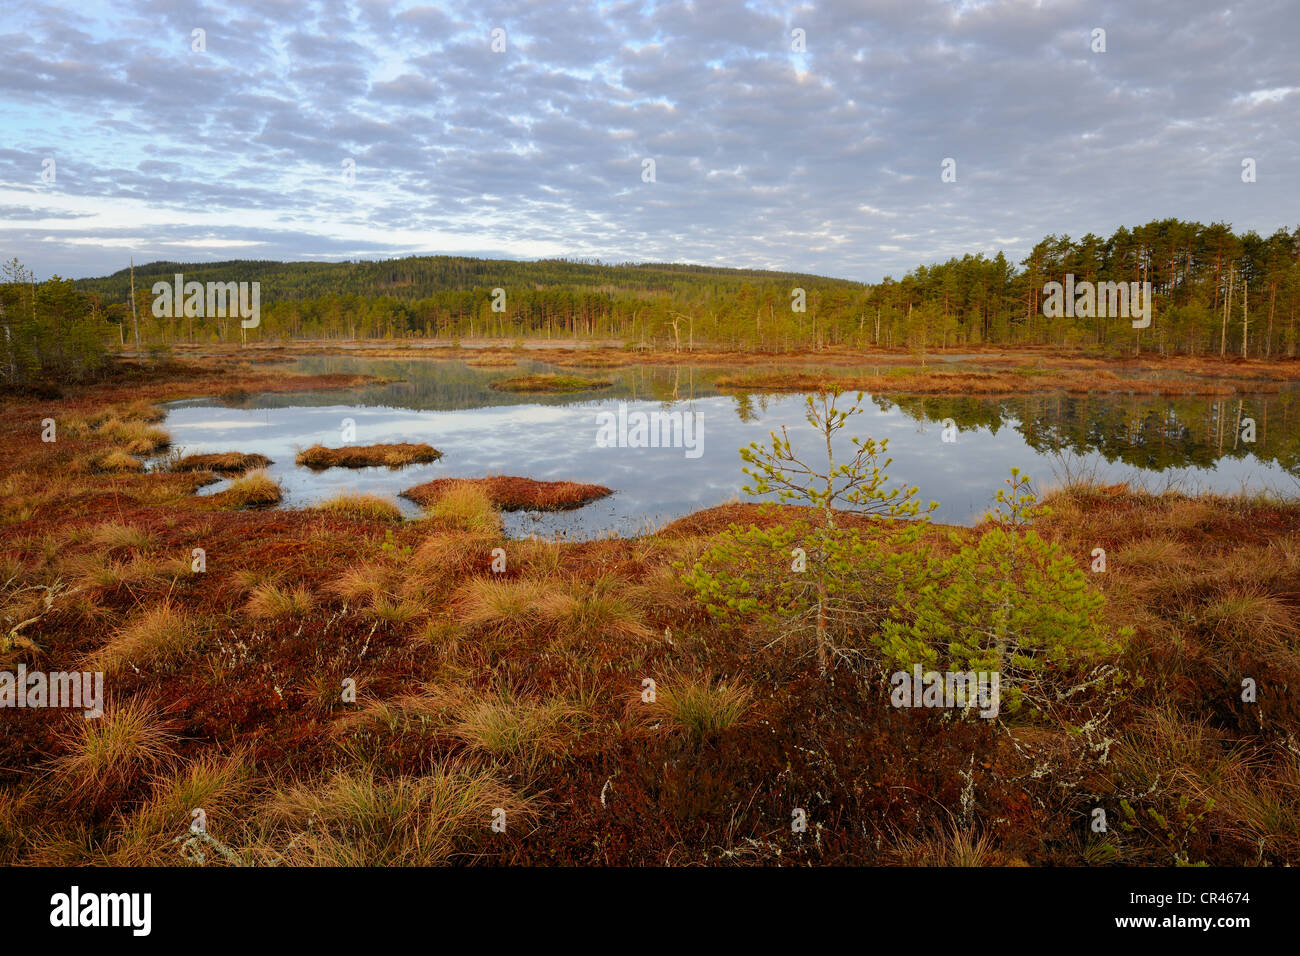 Swamp in the morning, Dalarna, Sweden, Scandinavia, Europe Stock Photo